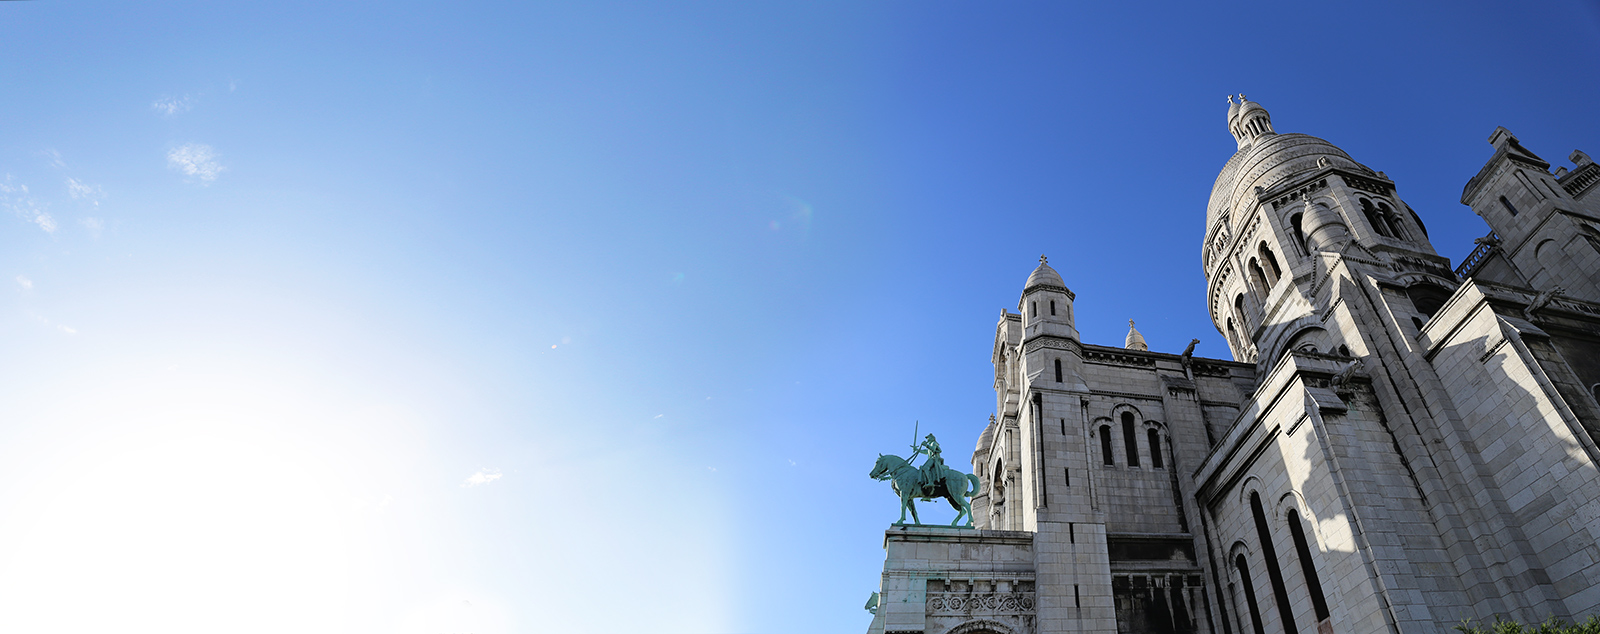 Sacré-Cœur  in Paris. I had to stitch several photos together to make this work.  This was one of the few cloud-free days.